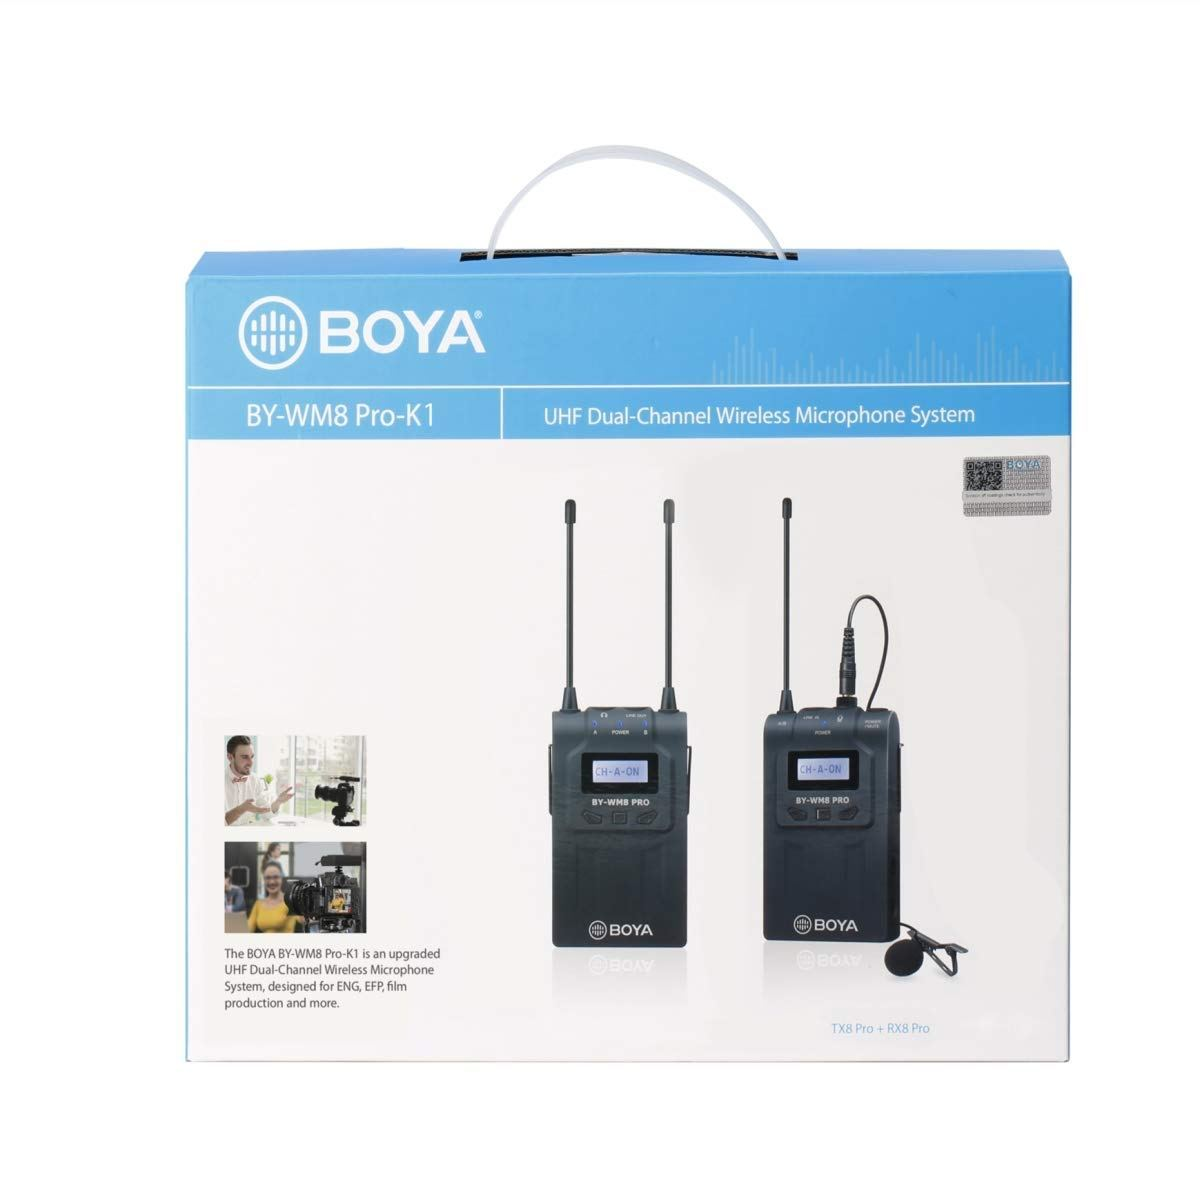 Boya BYWM8 Pro K1 Wireless Microphone